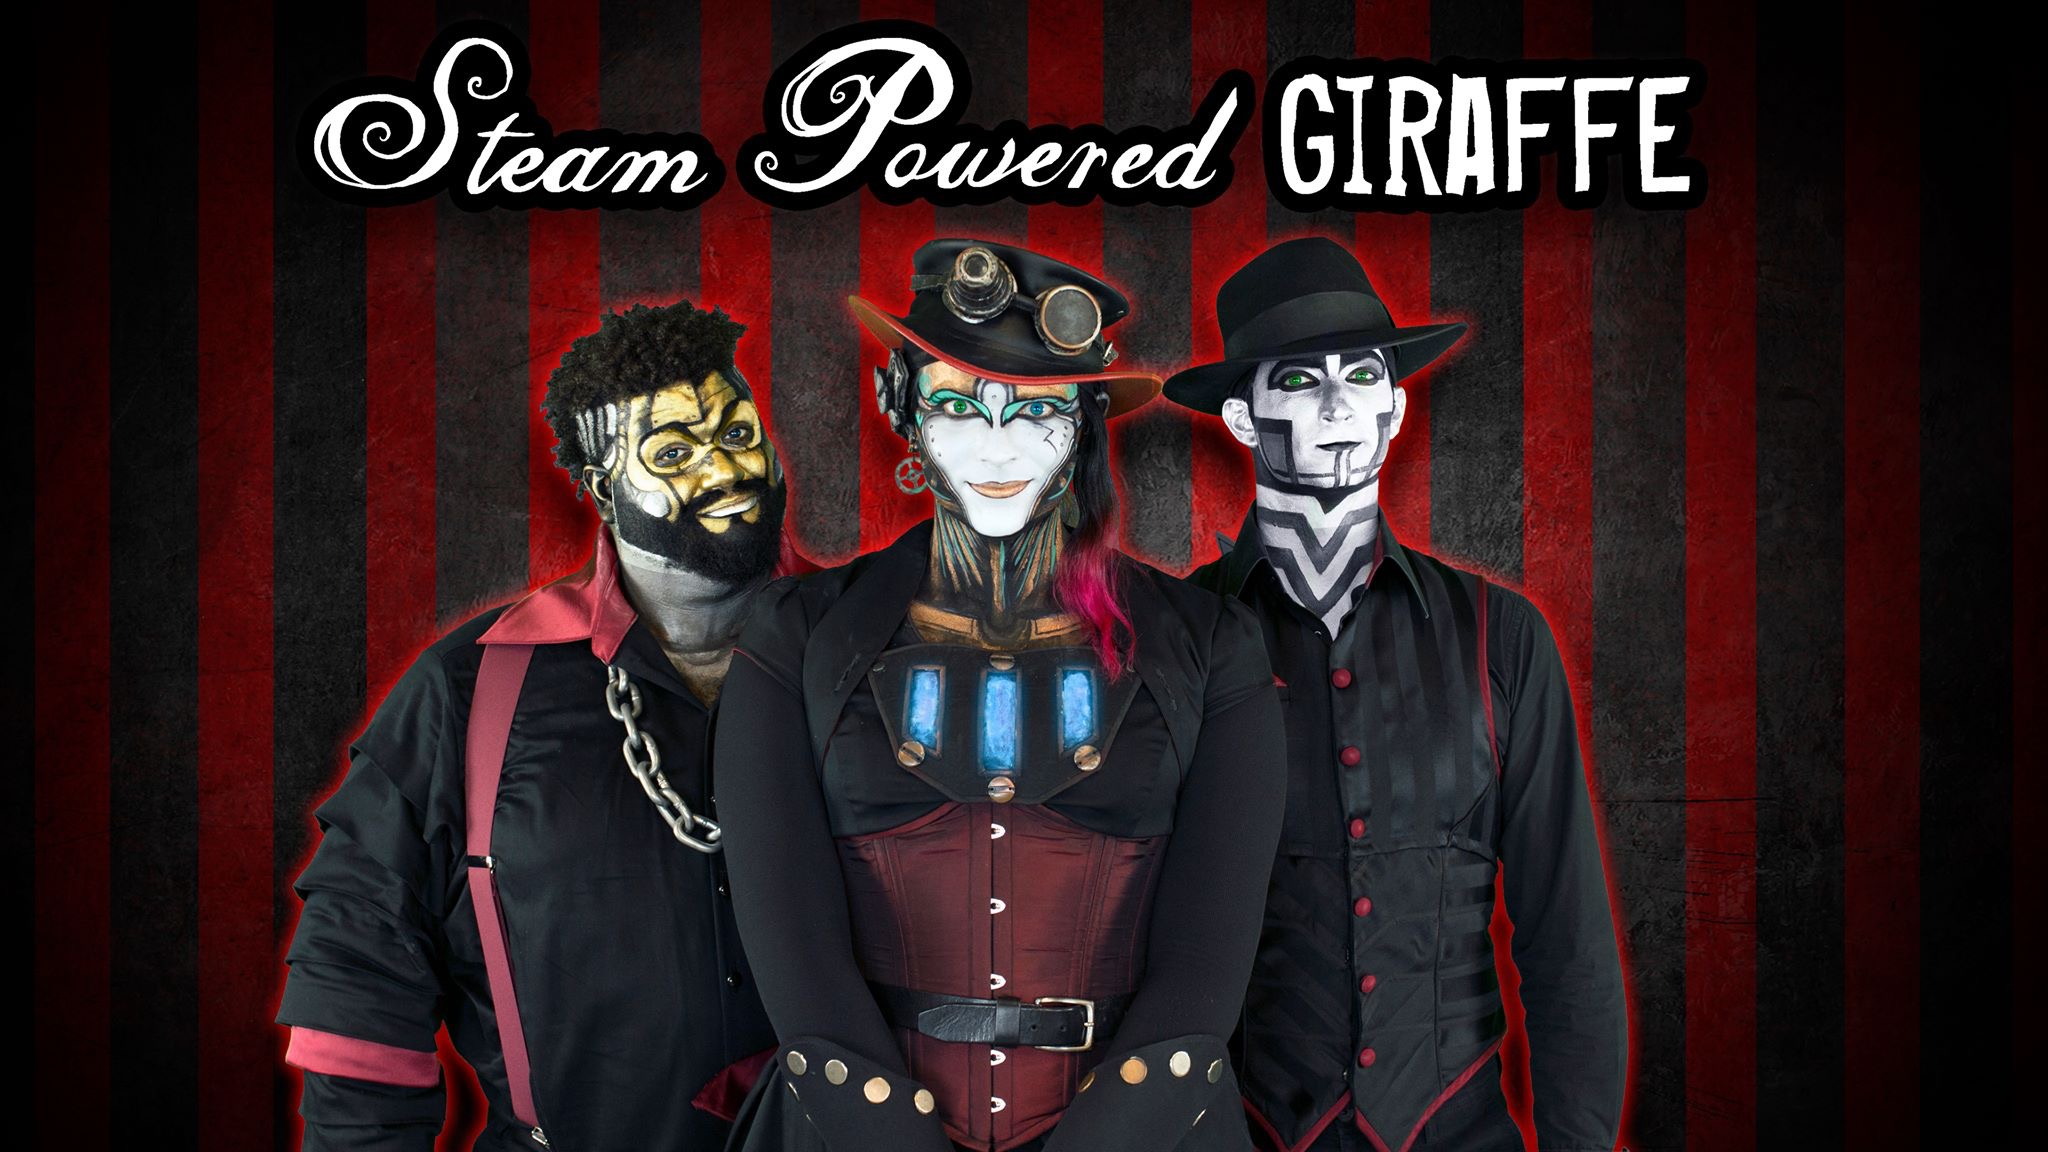 Steam Powered Giraffe Concert -